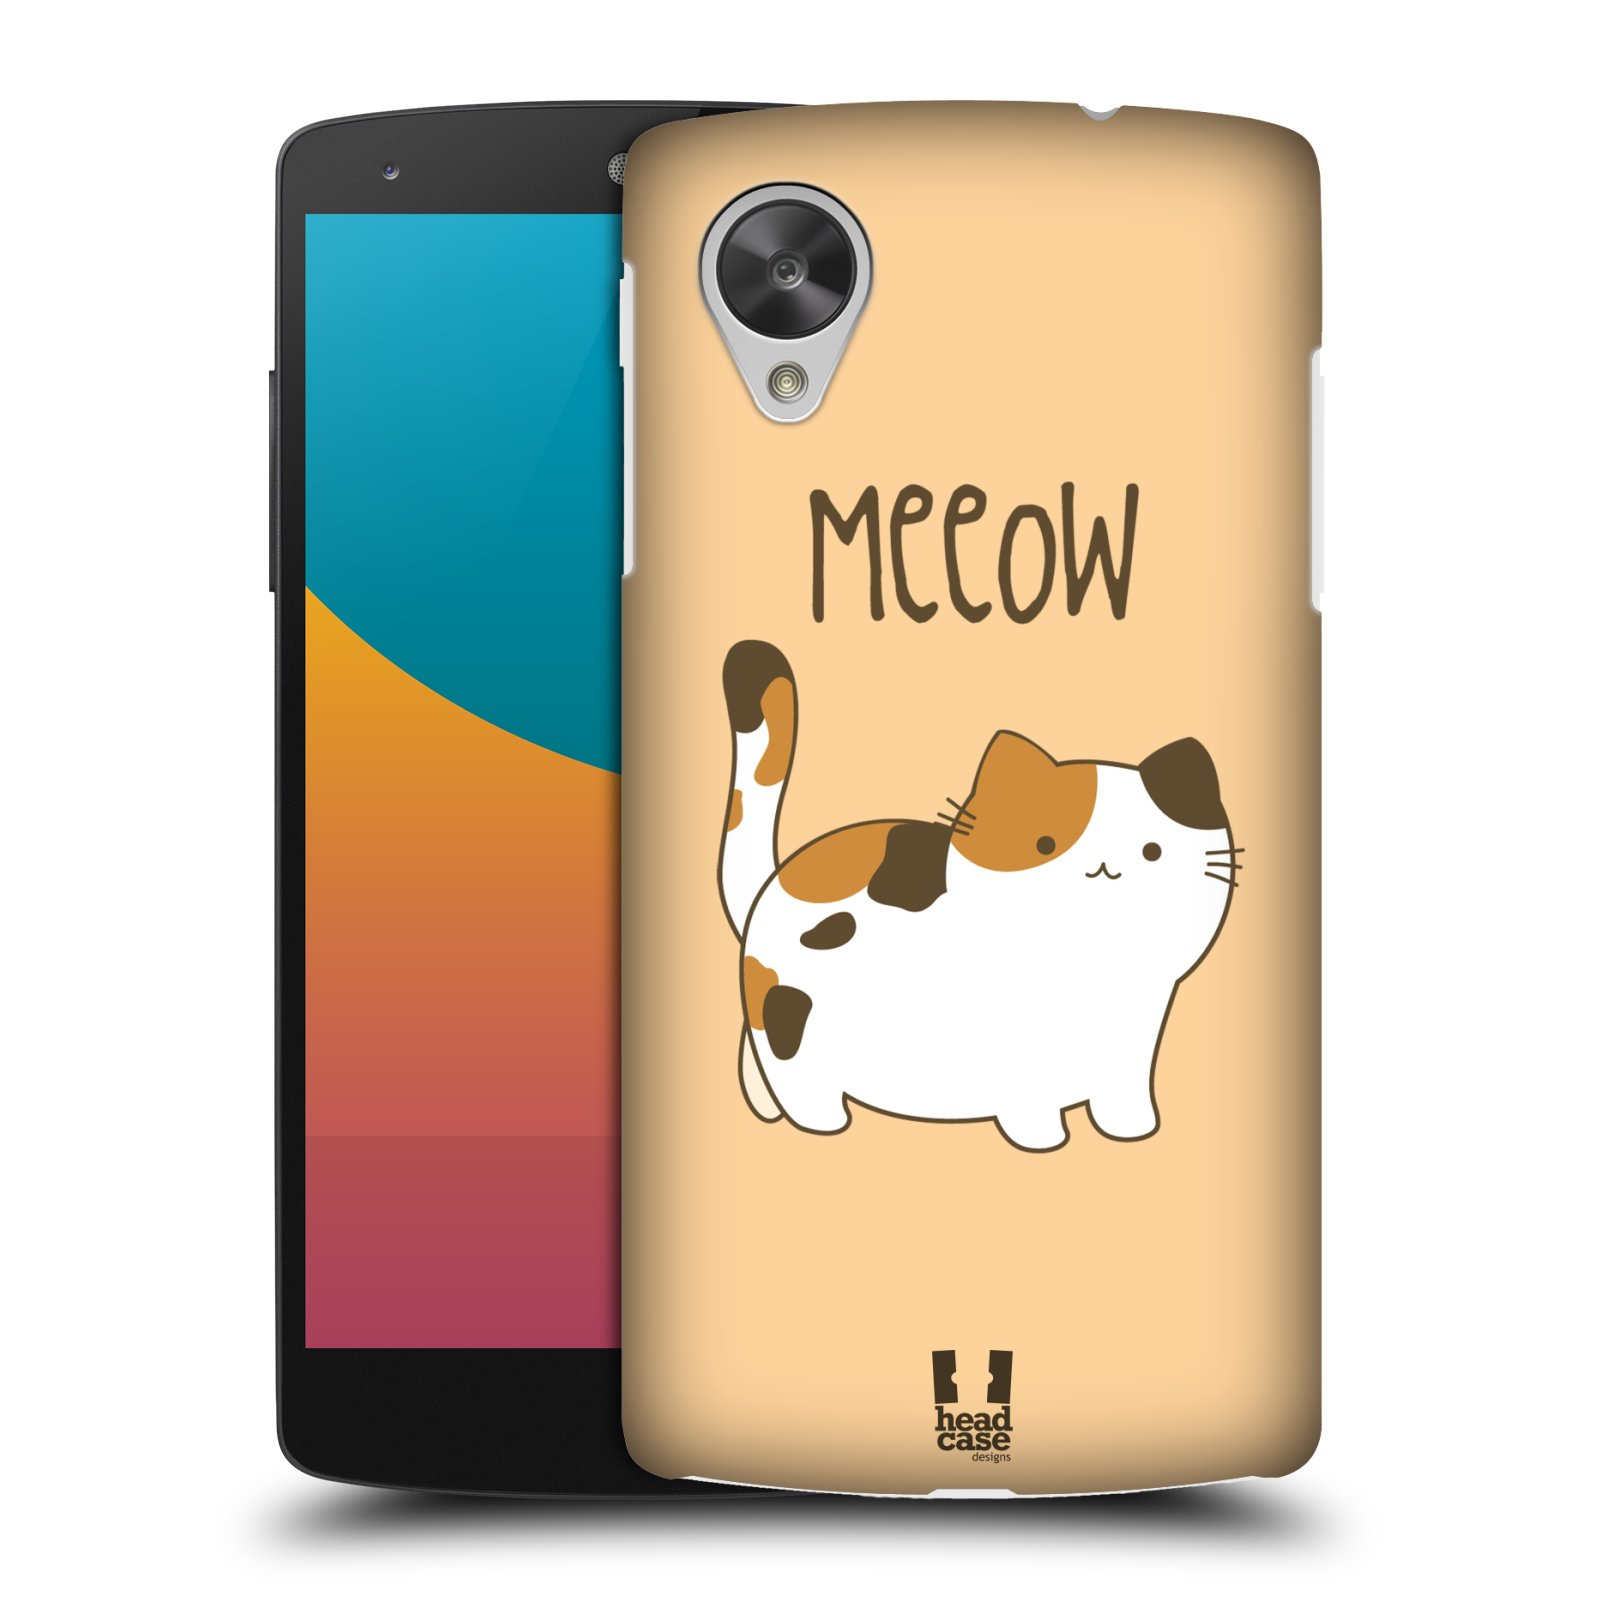 HEAD CASE KITTY CATS PROTECTIVE HARD BACK CASE COVER FOR LG GOOGLE NEXUS 5 D821